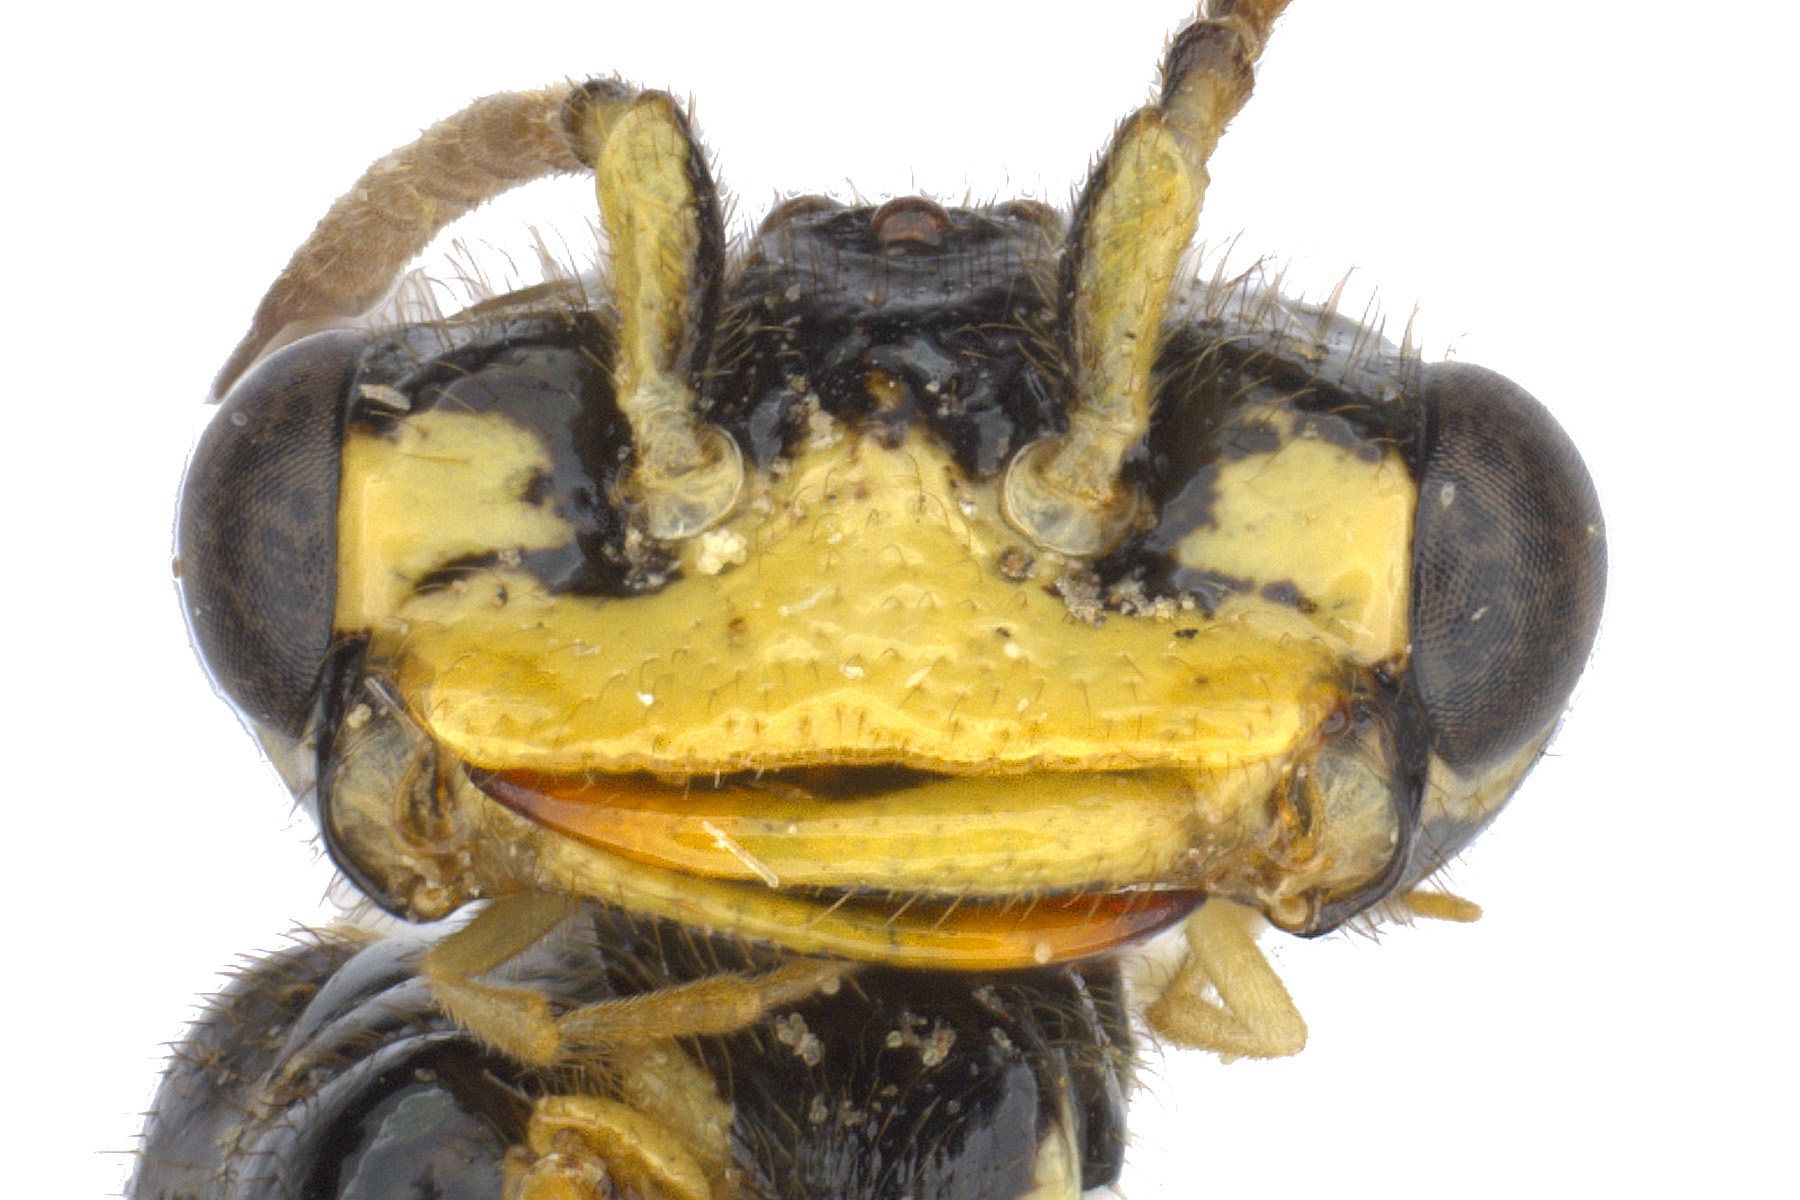 Pamphilius sp. male face; photo by J. Orr, WSDA